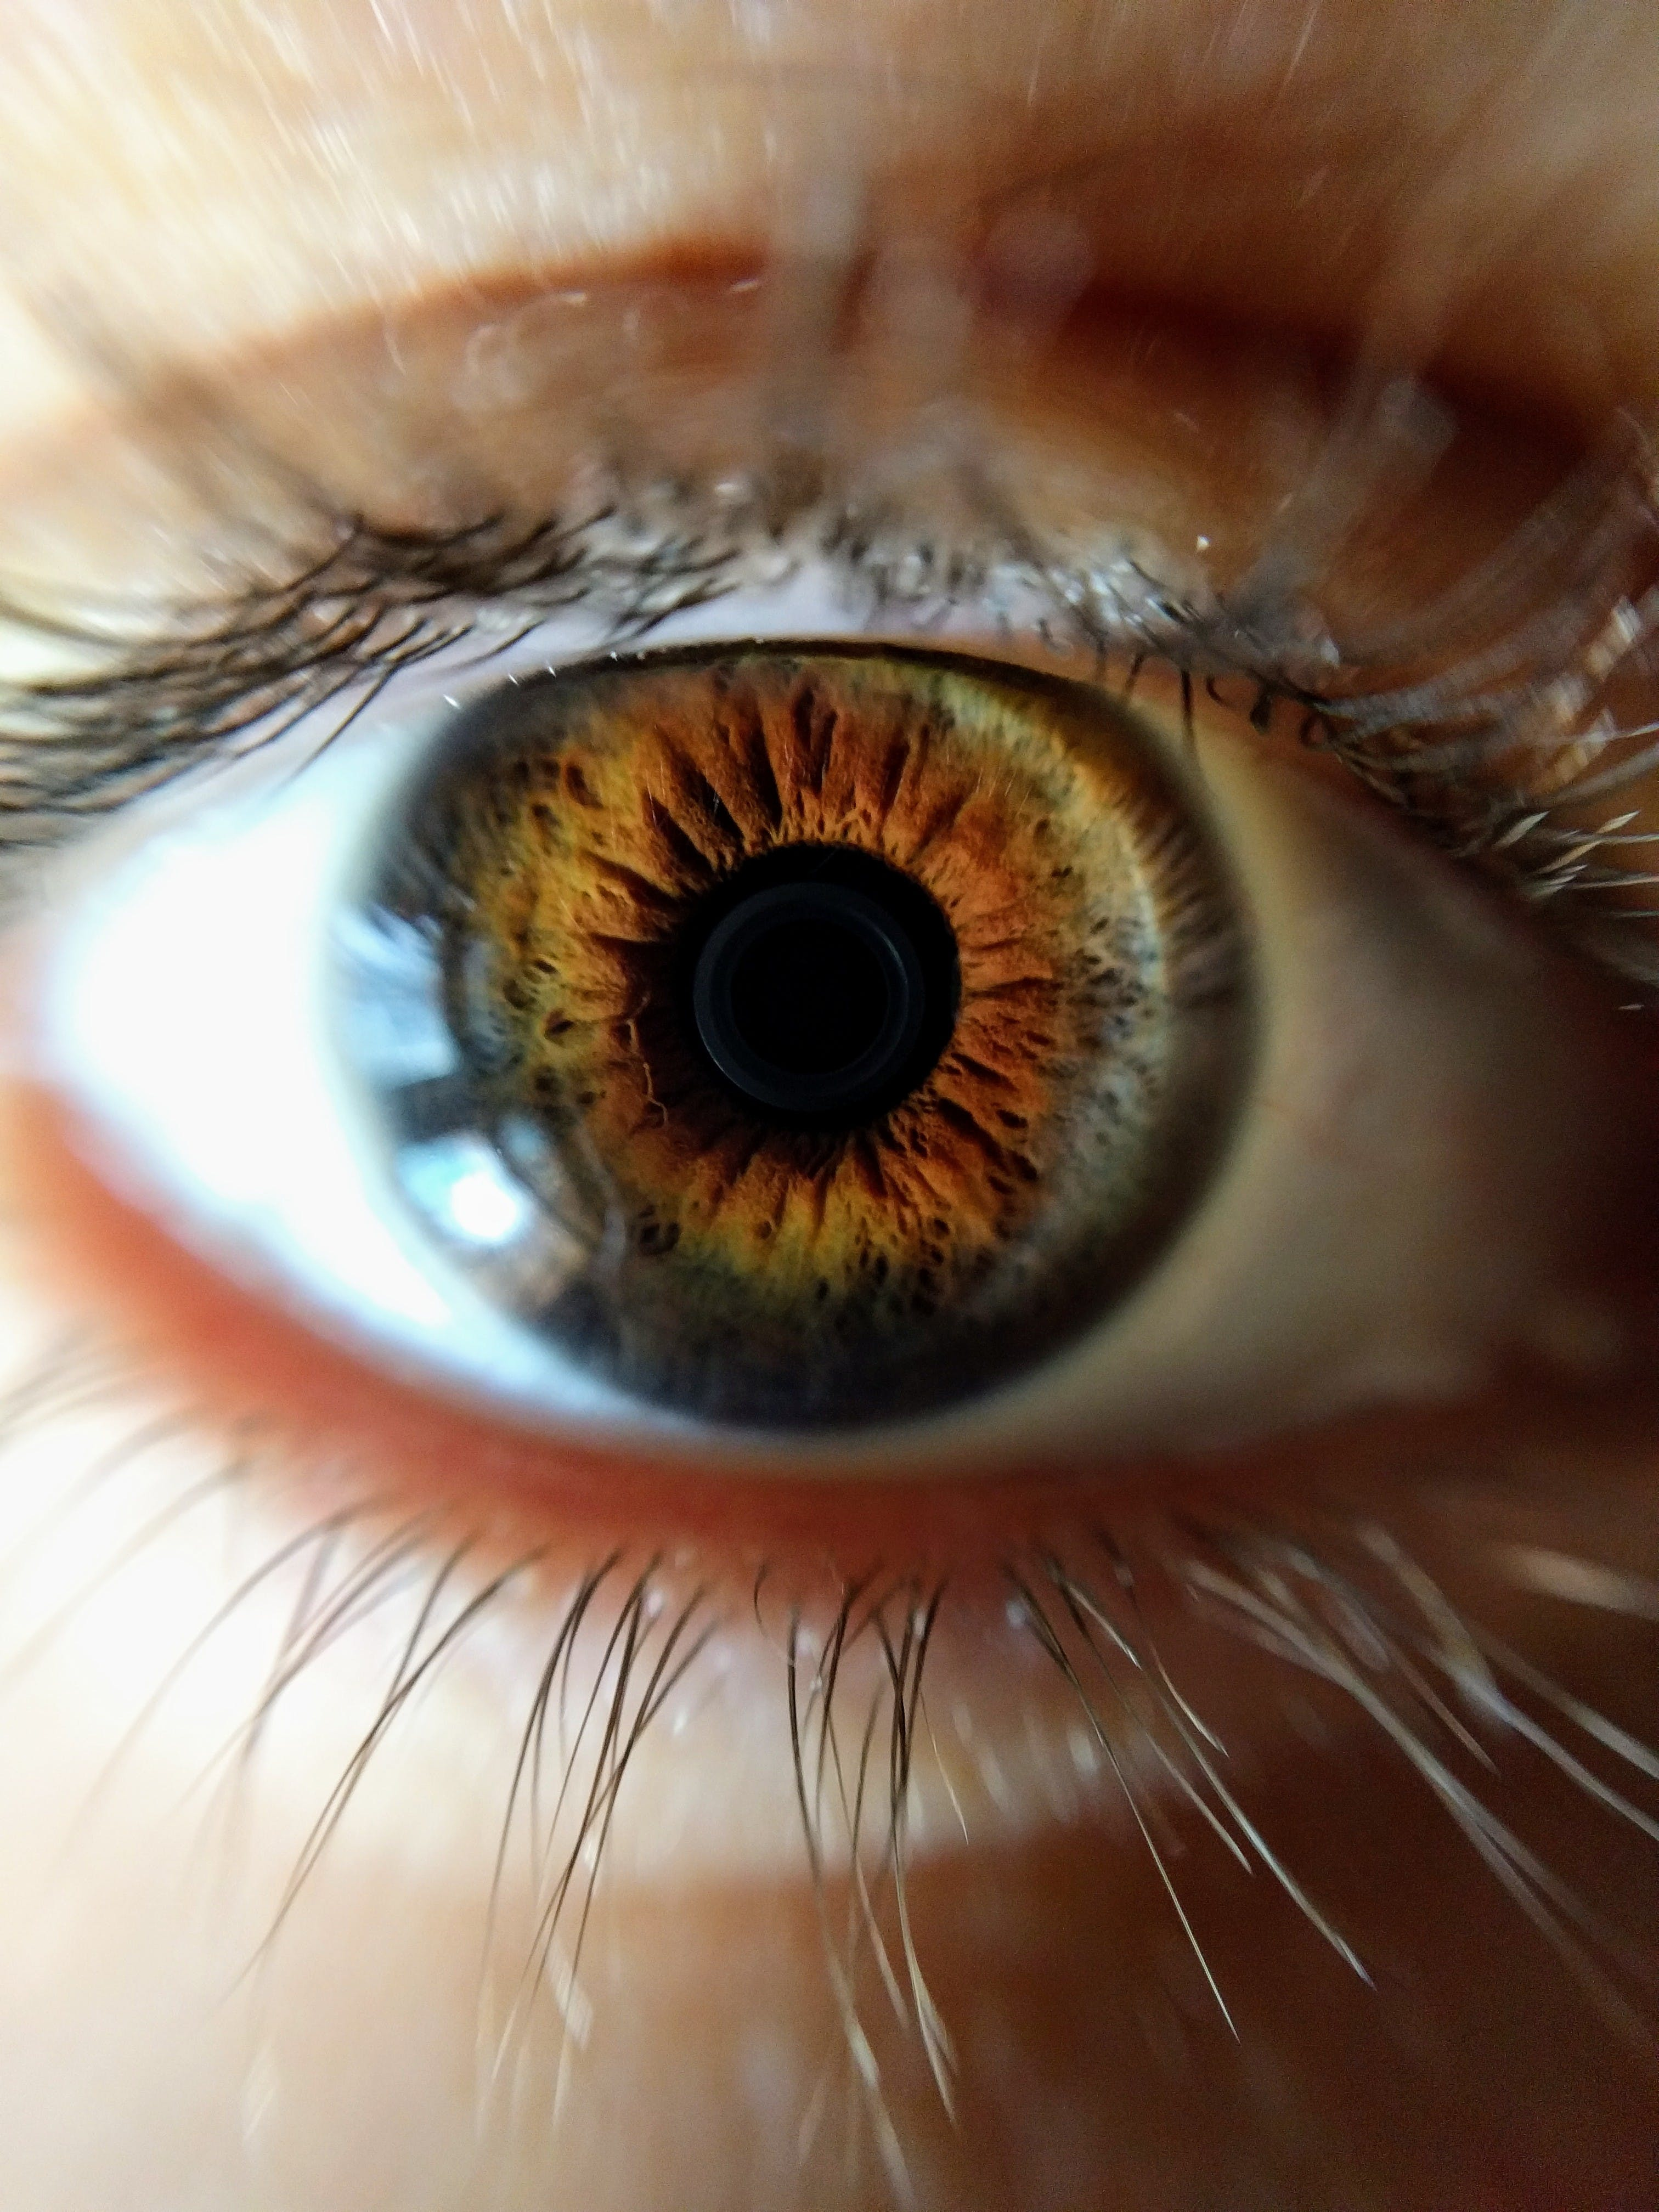 Human Eye Closeup Photo